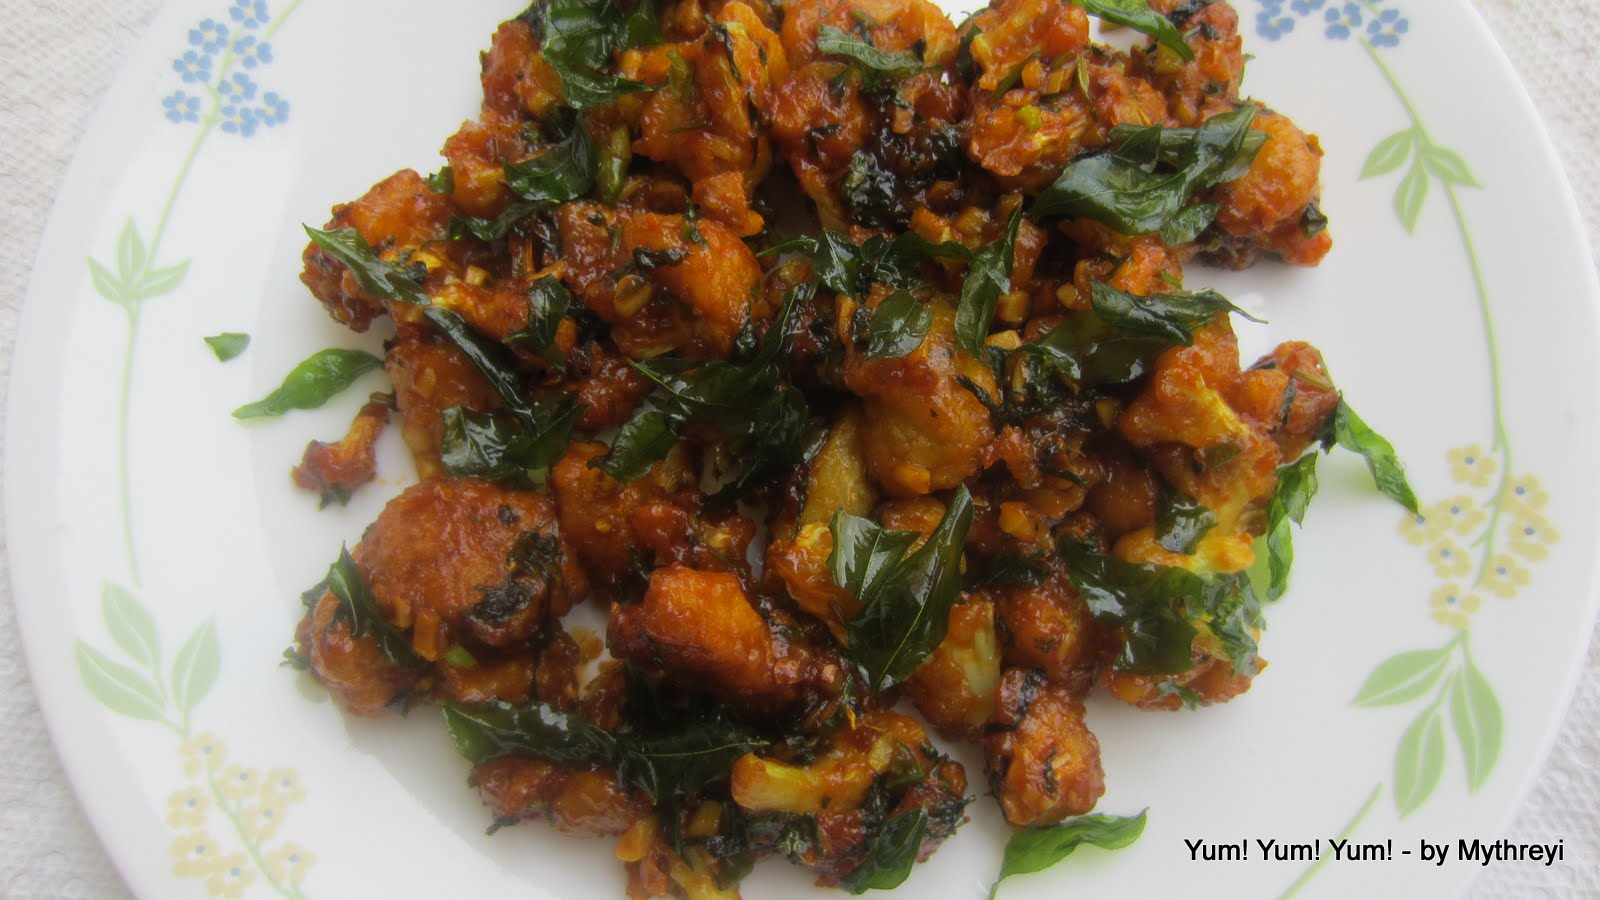 Yum yum yum gobi manchuria with no cornstarch you can try this fusion recipe with no confusion even when the main ingredient is missing corn starch here is the recipe for you enjoy forumfinder Image collections